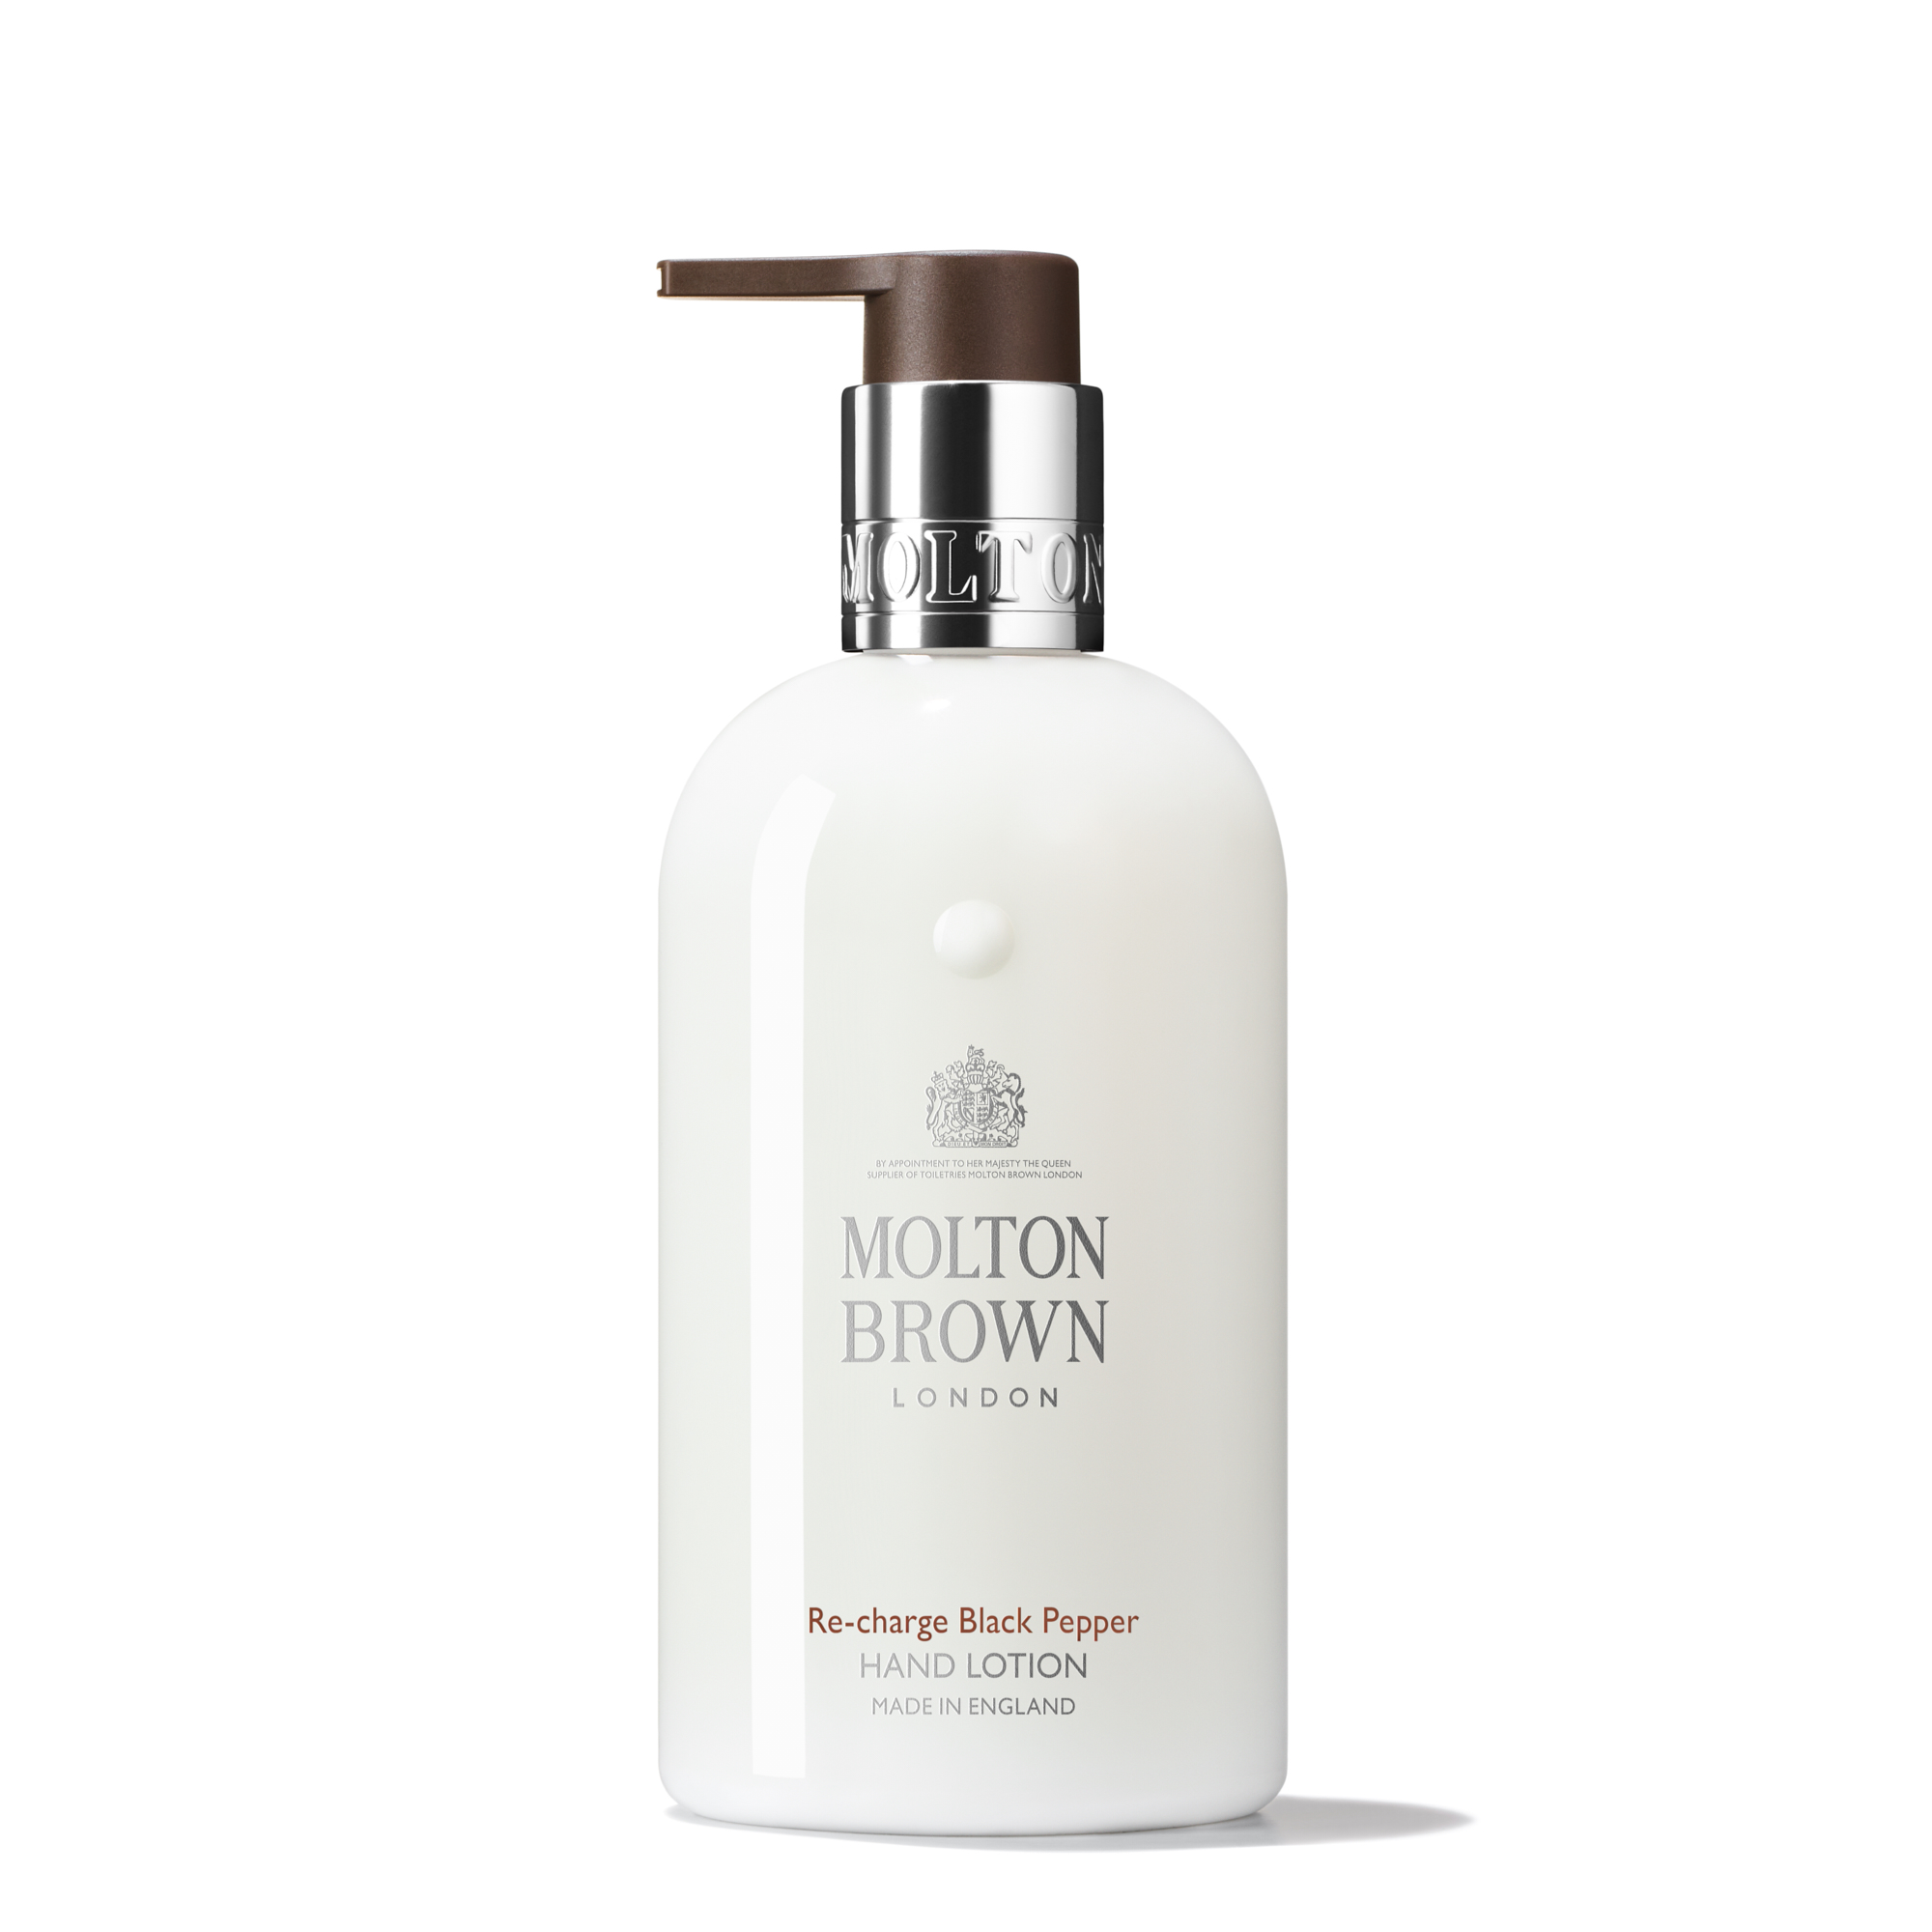 An image of Molton Brown Re-charge Black Pepper Hand Lotion 300ml - RE-CHARGE BLACK PEPPER